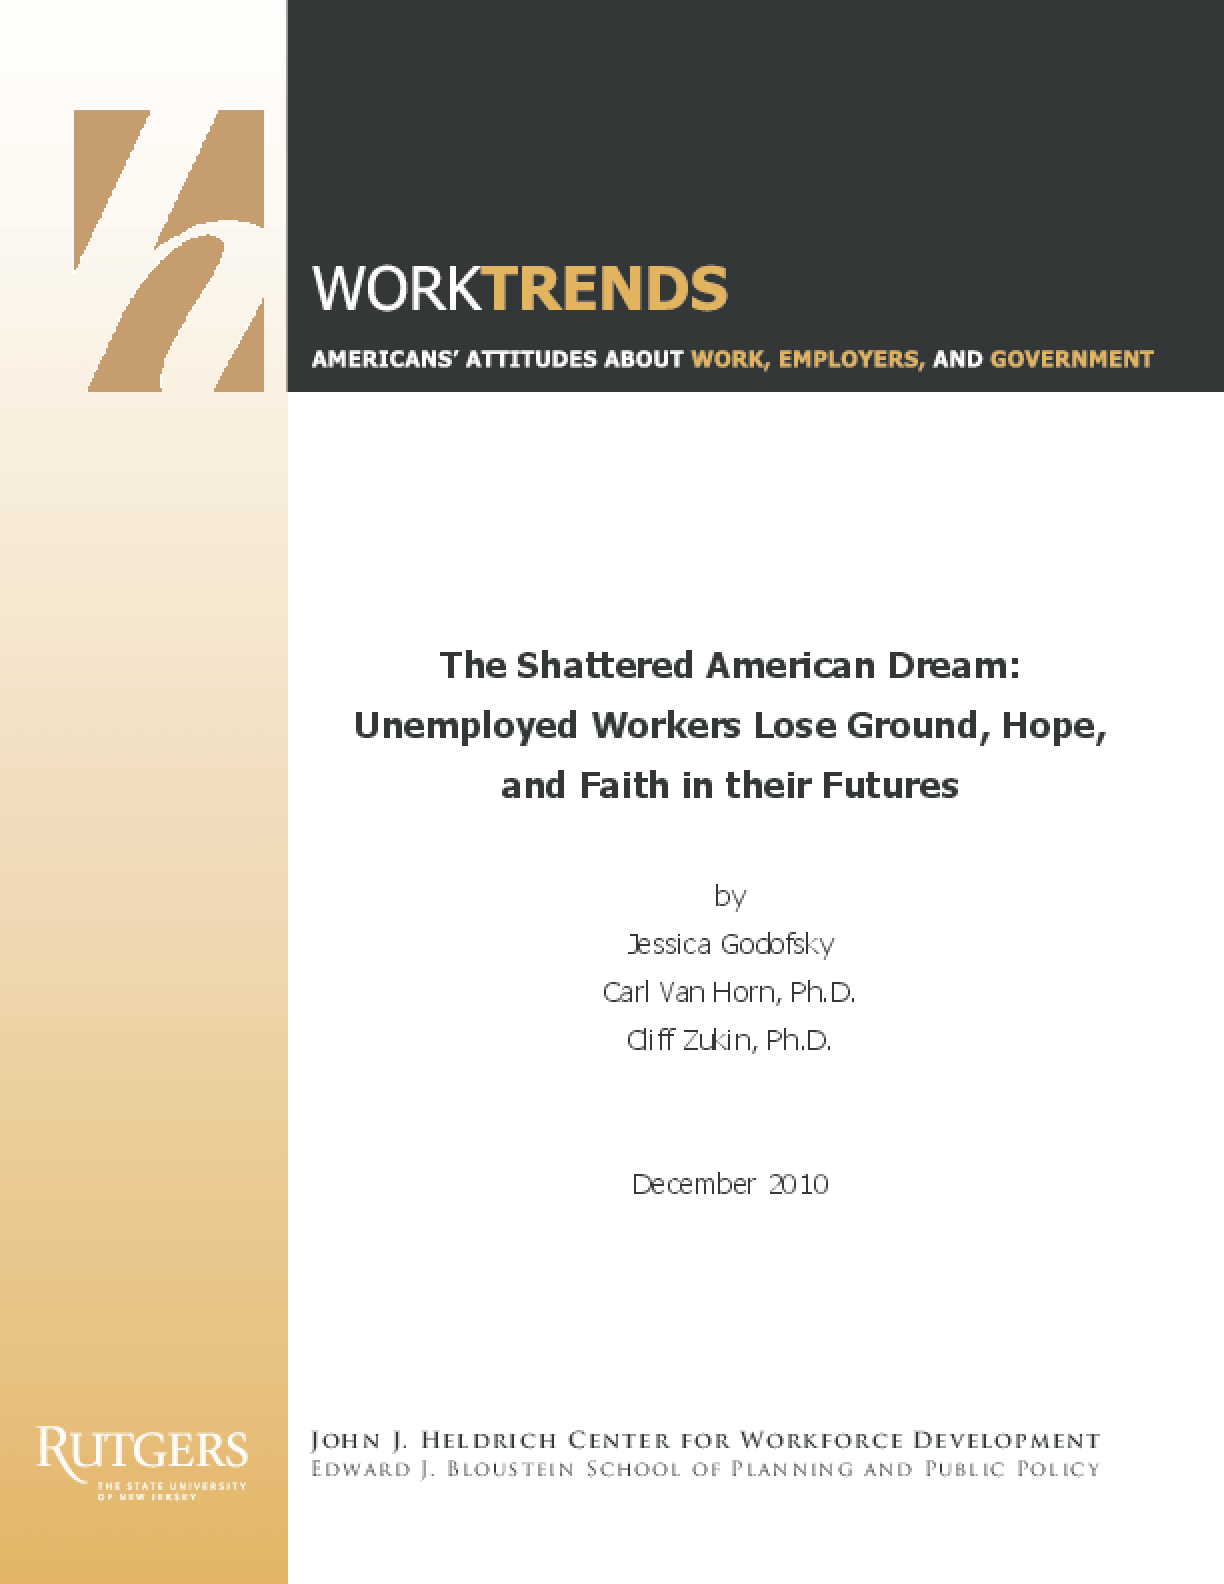 The Shattered American Dream